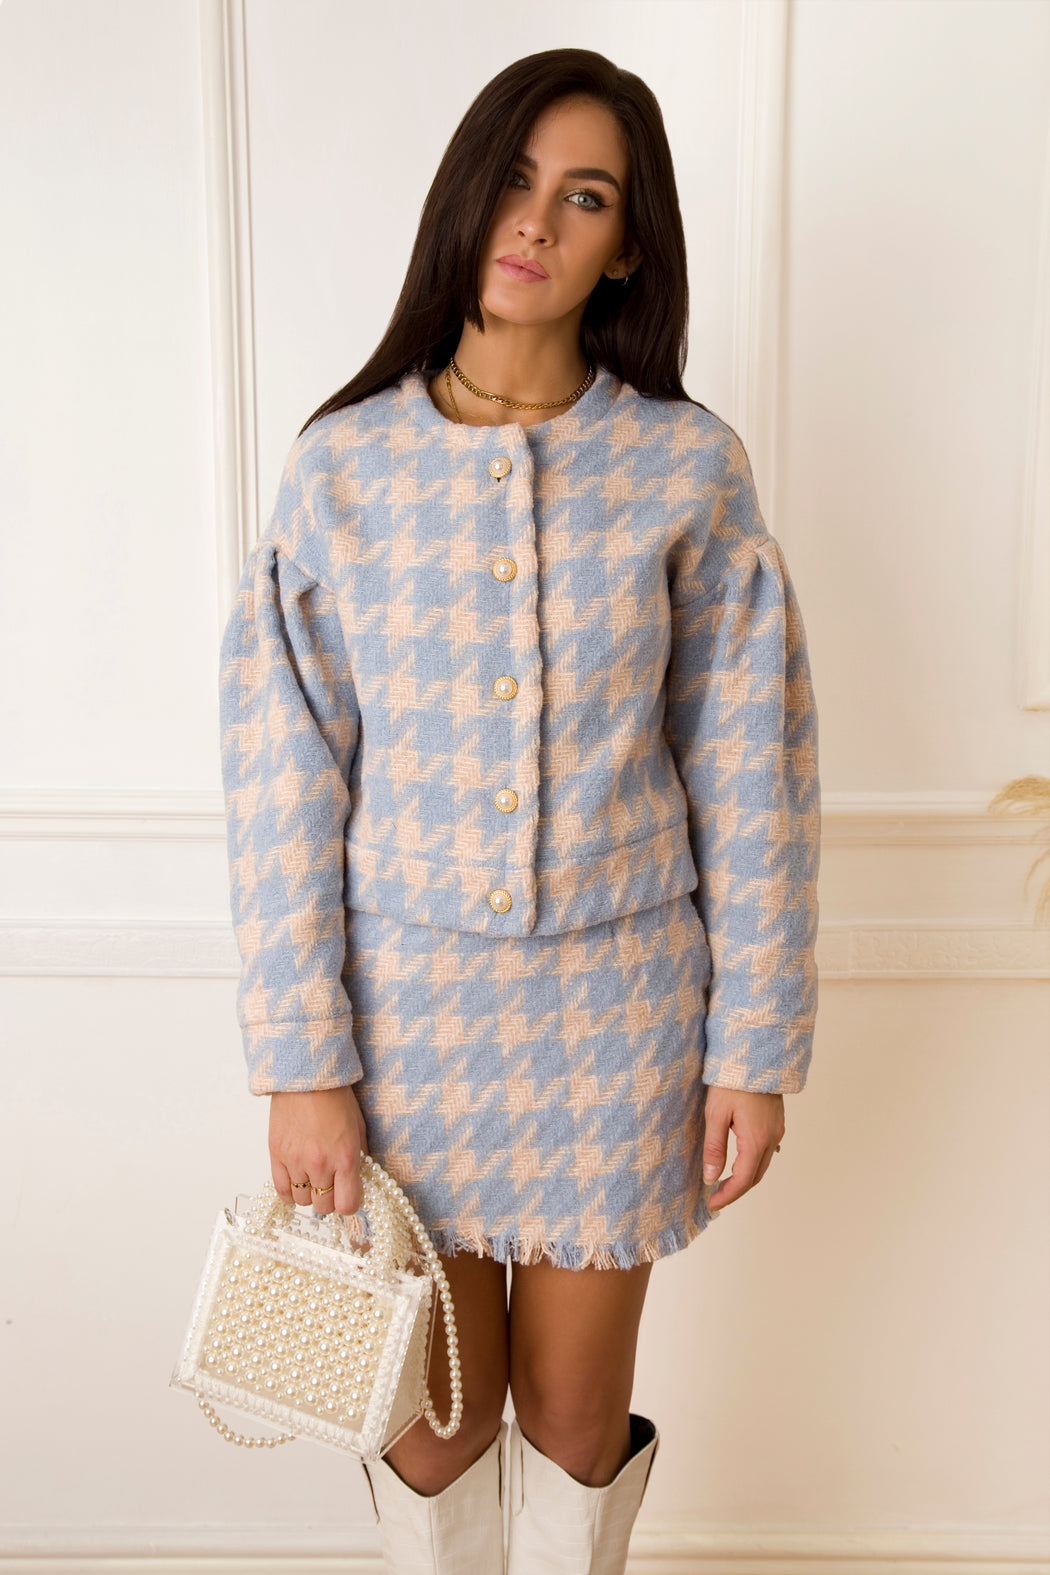 Cher Houndstooth Blue Jacket - Lavand Stories